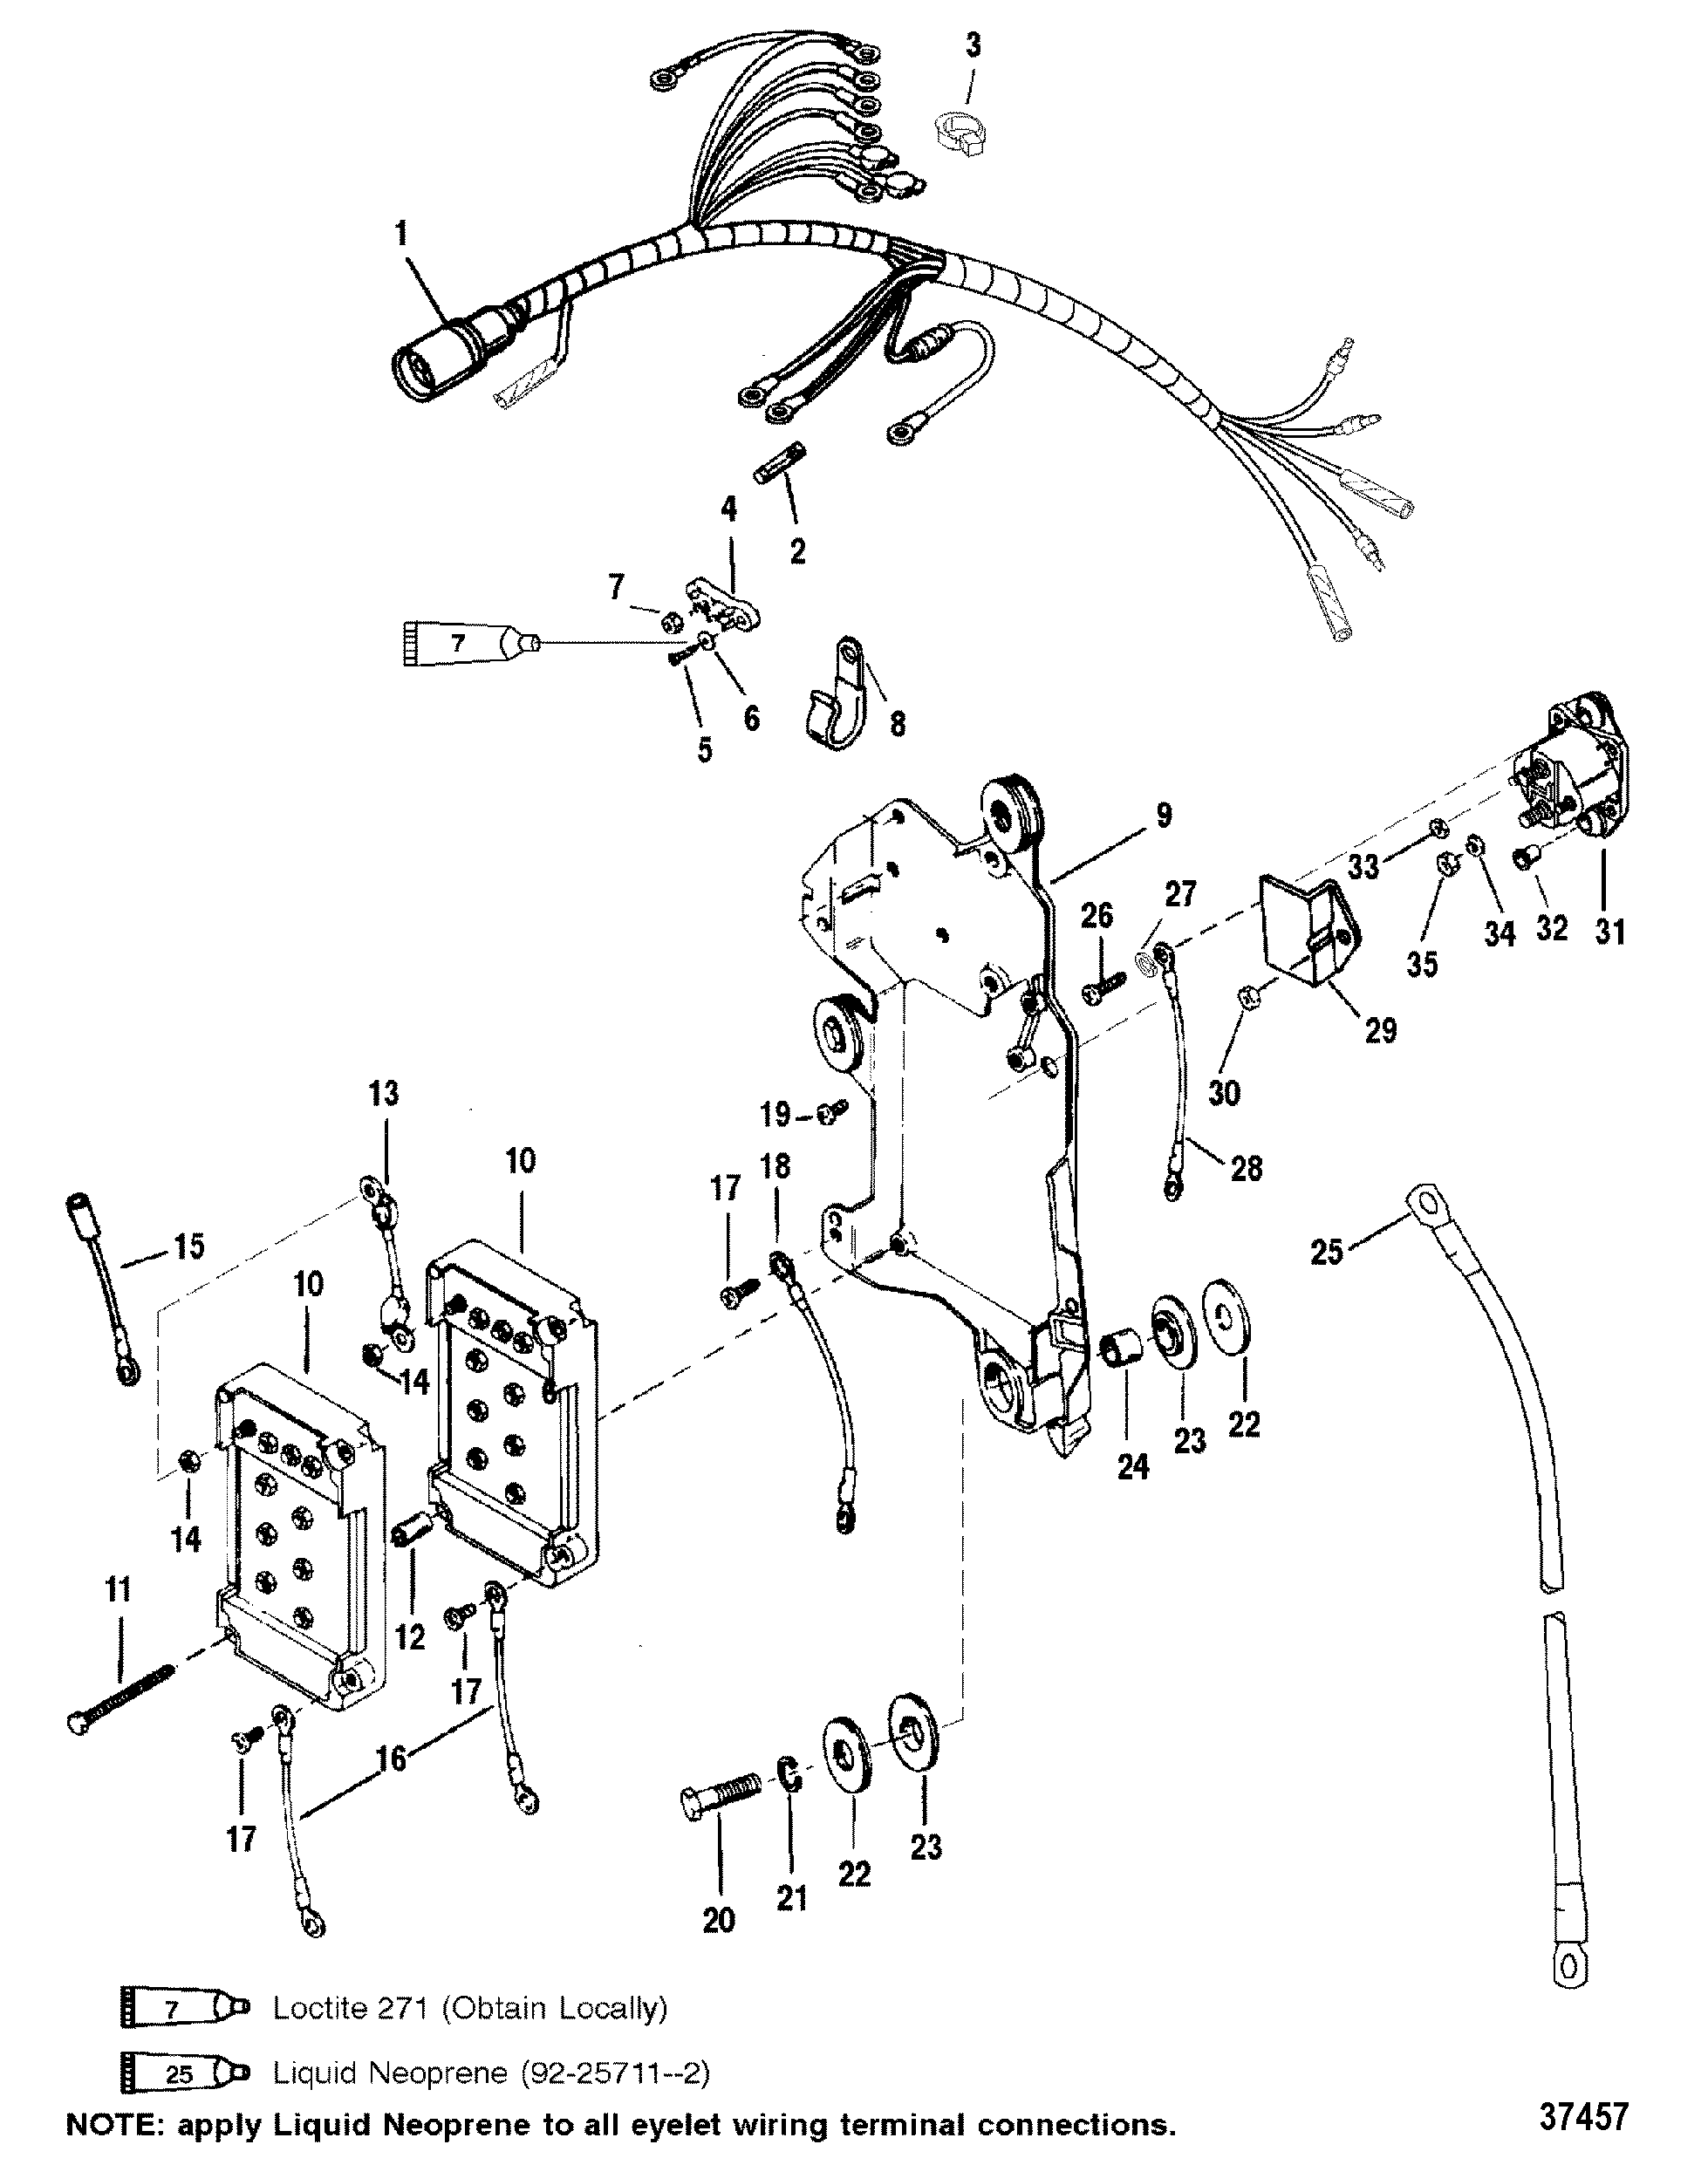 37457 wiring harness starter solenoid for mariner mercury 150 175 200 efi mercury 14 pin wiring harness diagram at sewacar.co